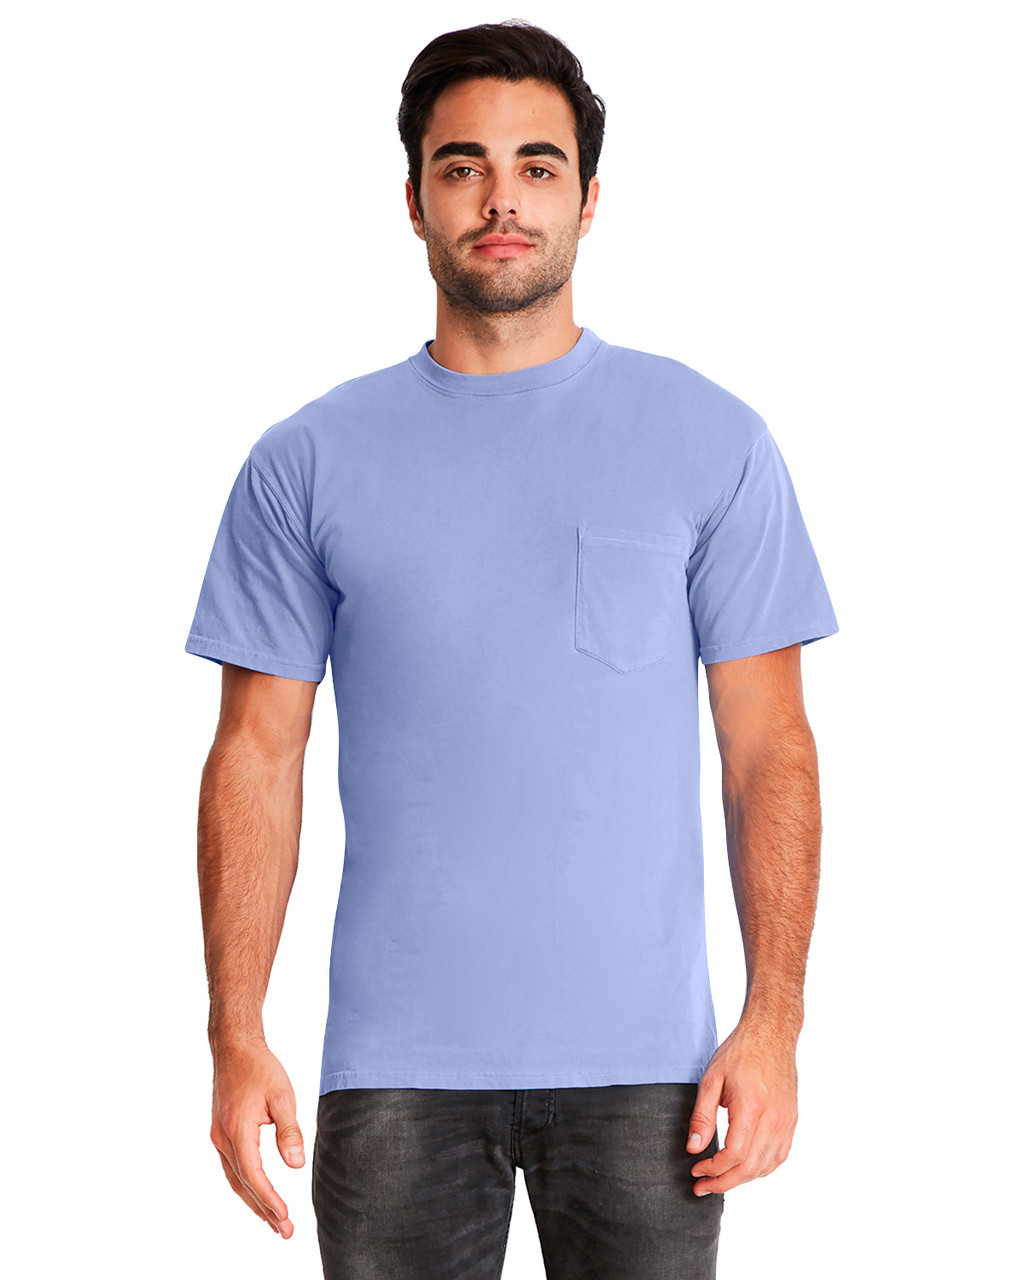 Peri Blue - 7415 Next Level Adult Inspired Dye Crew T-Shirt with Pocket | Blankclothing.ca